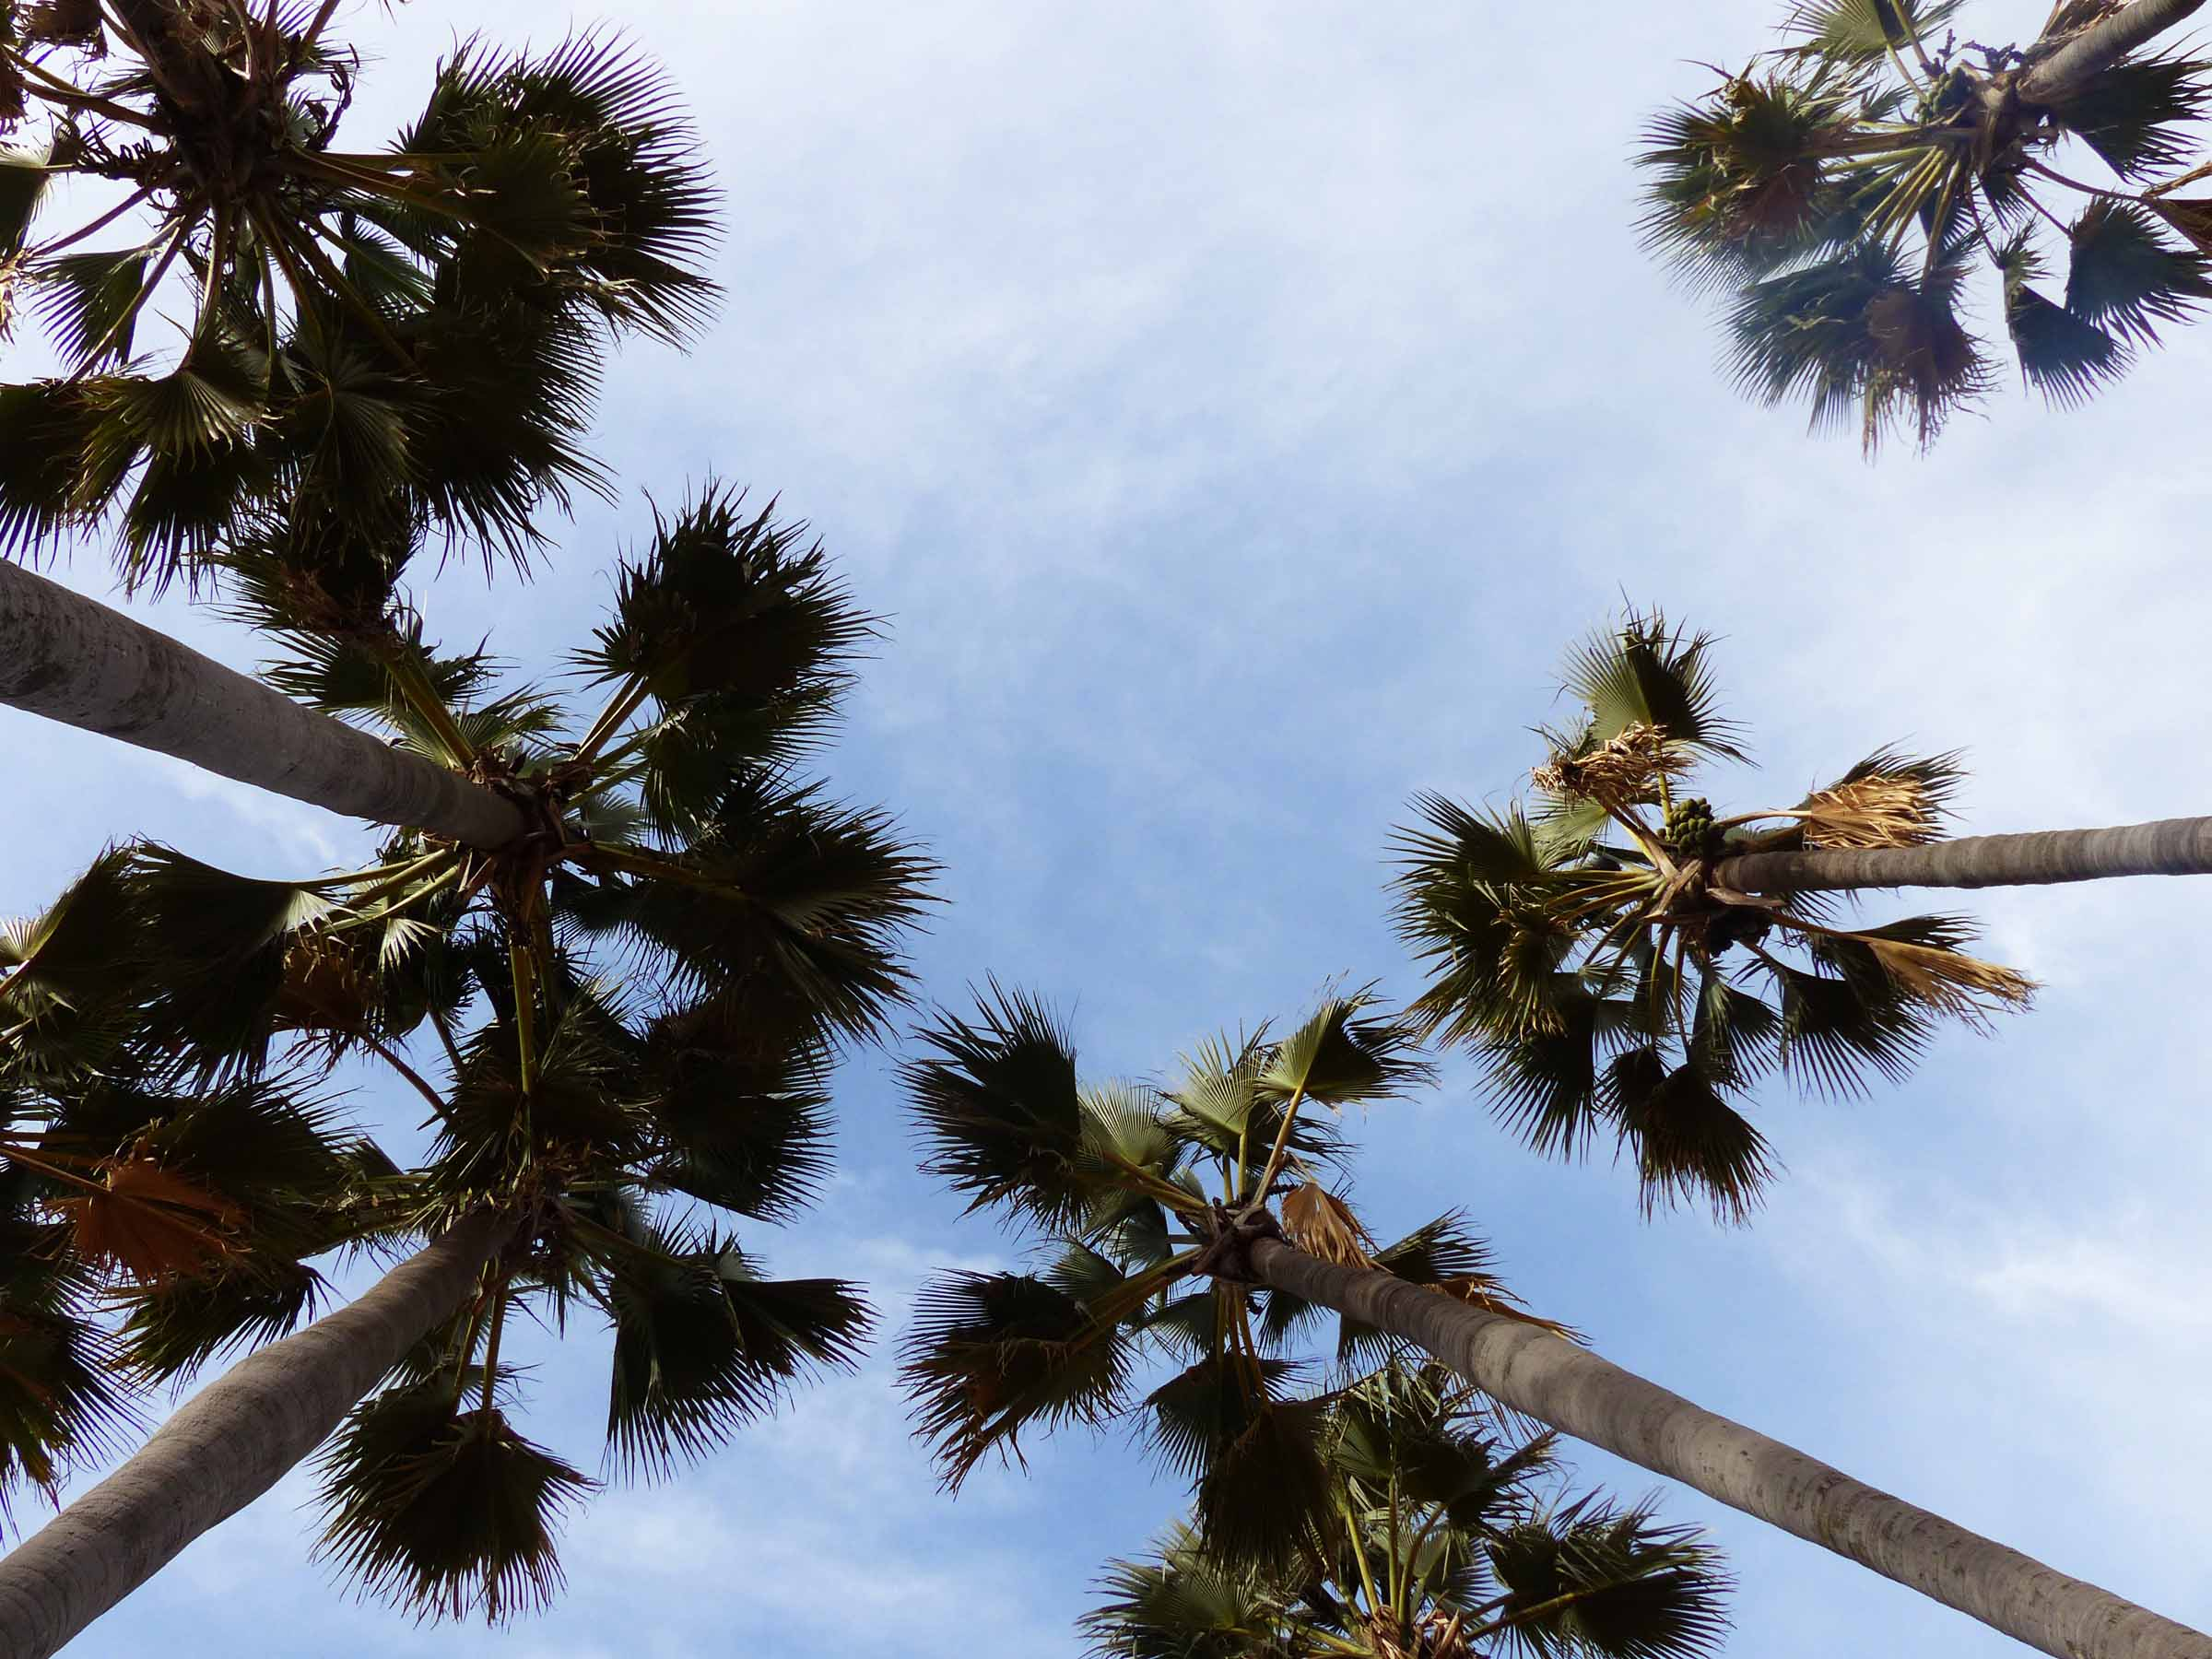 Looking up at tall palm trees